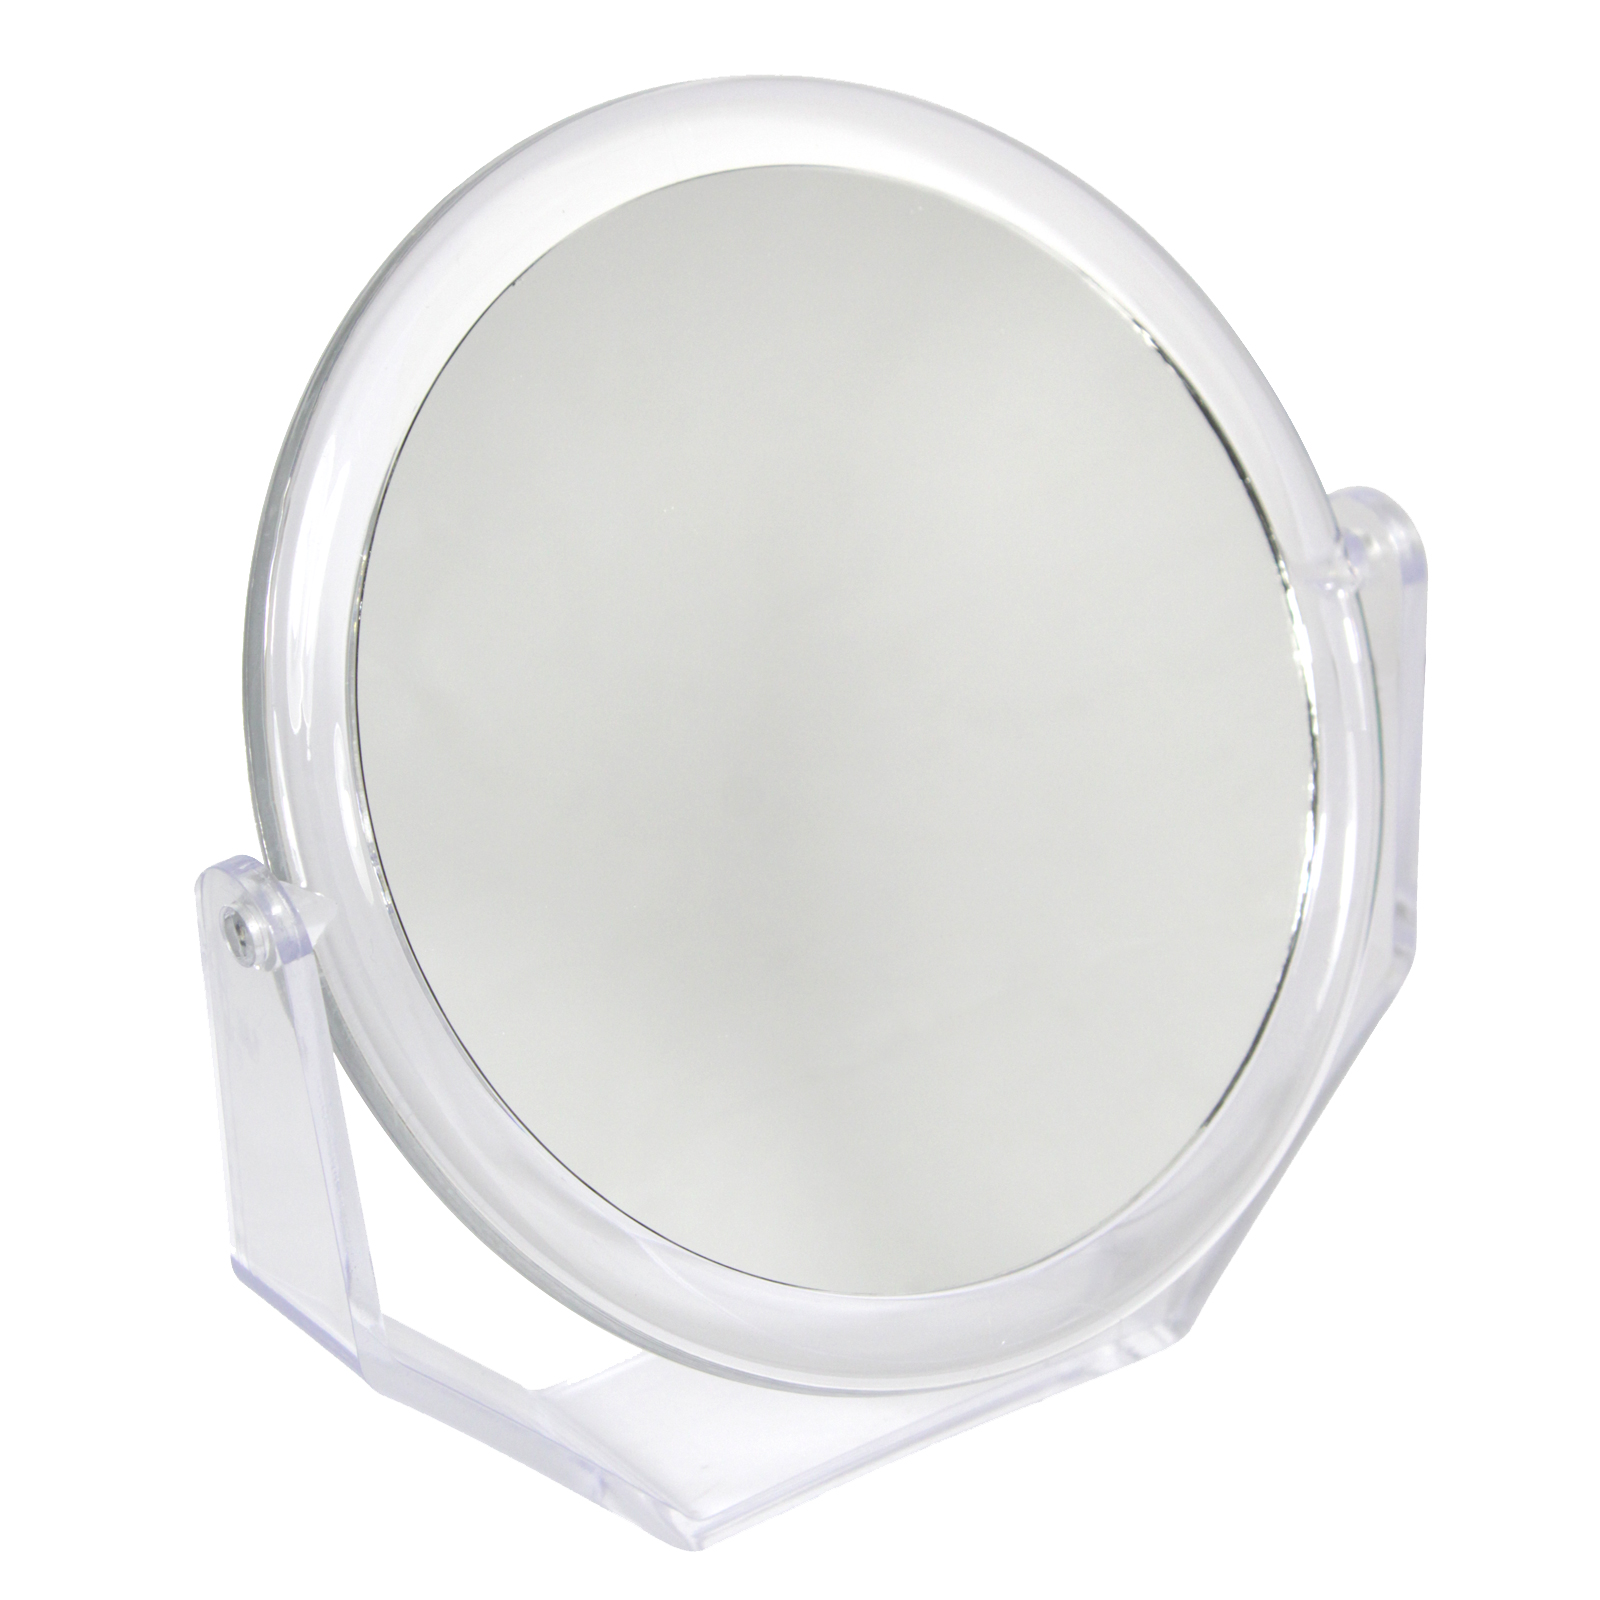 ROYAL ROUND SWIVEL MIRROR 5X MAGNIFIED X1